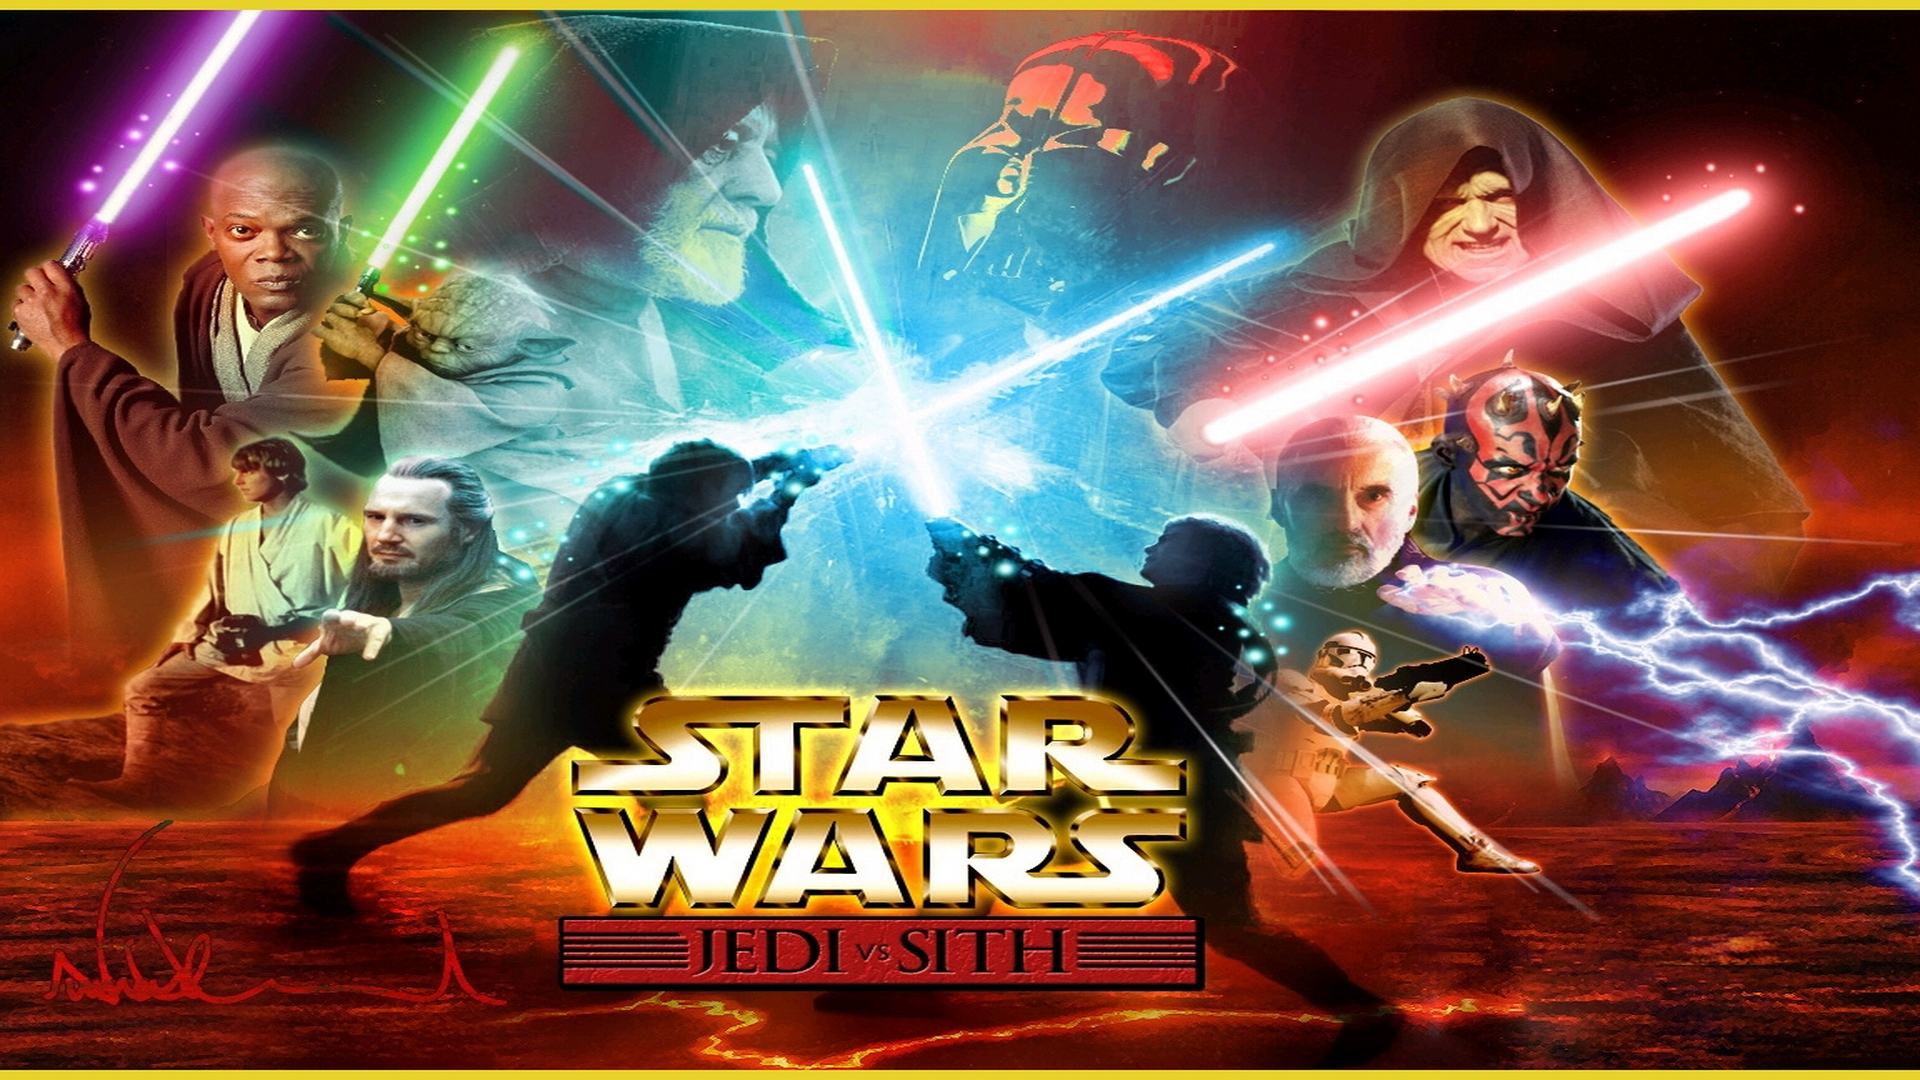 Star Wars Wallpapers Jedi vs Sith star wars 2912035 1152 864 Desktop 1920x1080